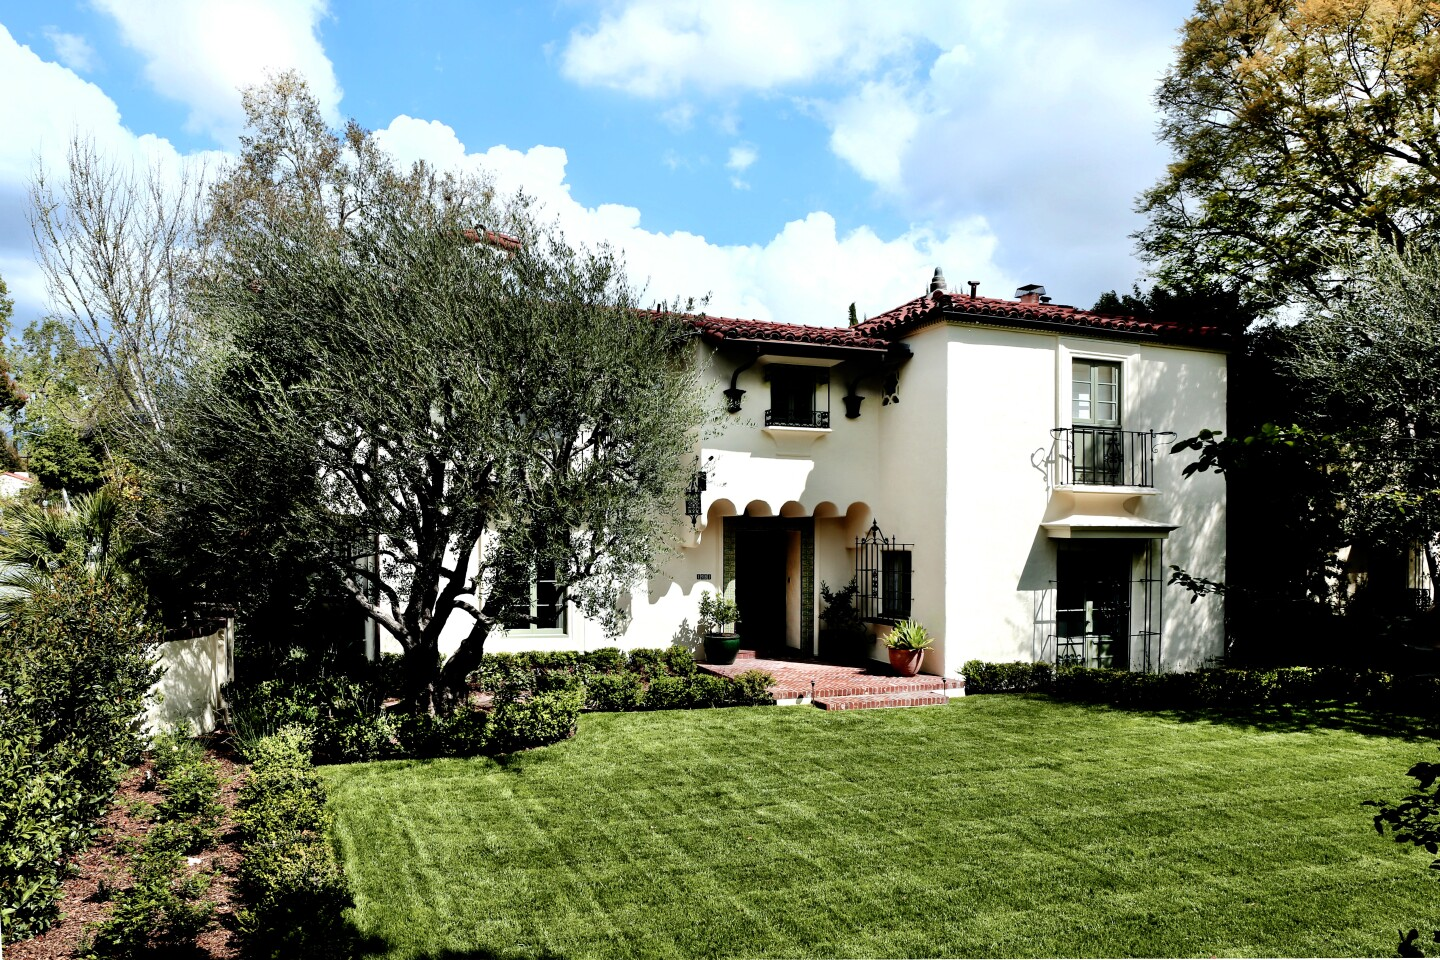 A stellar example of the Spanish Colonial Revival style, the graceful residence was originally designed by Harold J. Bissner and recently renovated by Kevin A. Clarke. Moorish accents, Juliet balconies and a classic clay-tile roof are among features of the home, listed for $4.25 million. Decorative Mission-style tilework is a hallmark both inside and out.